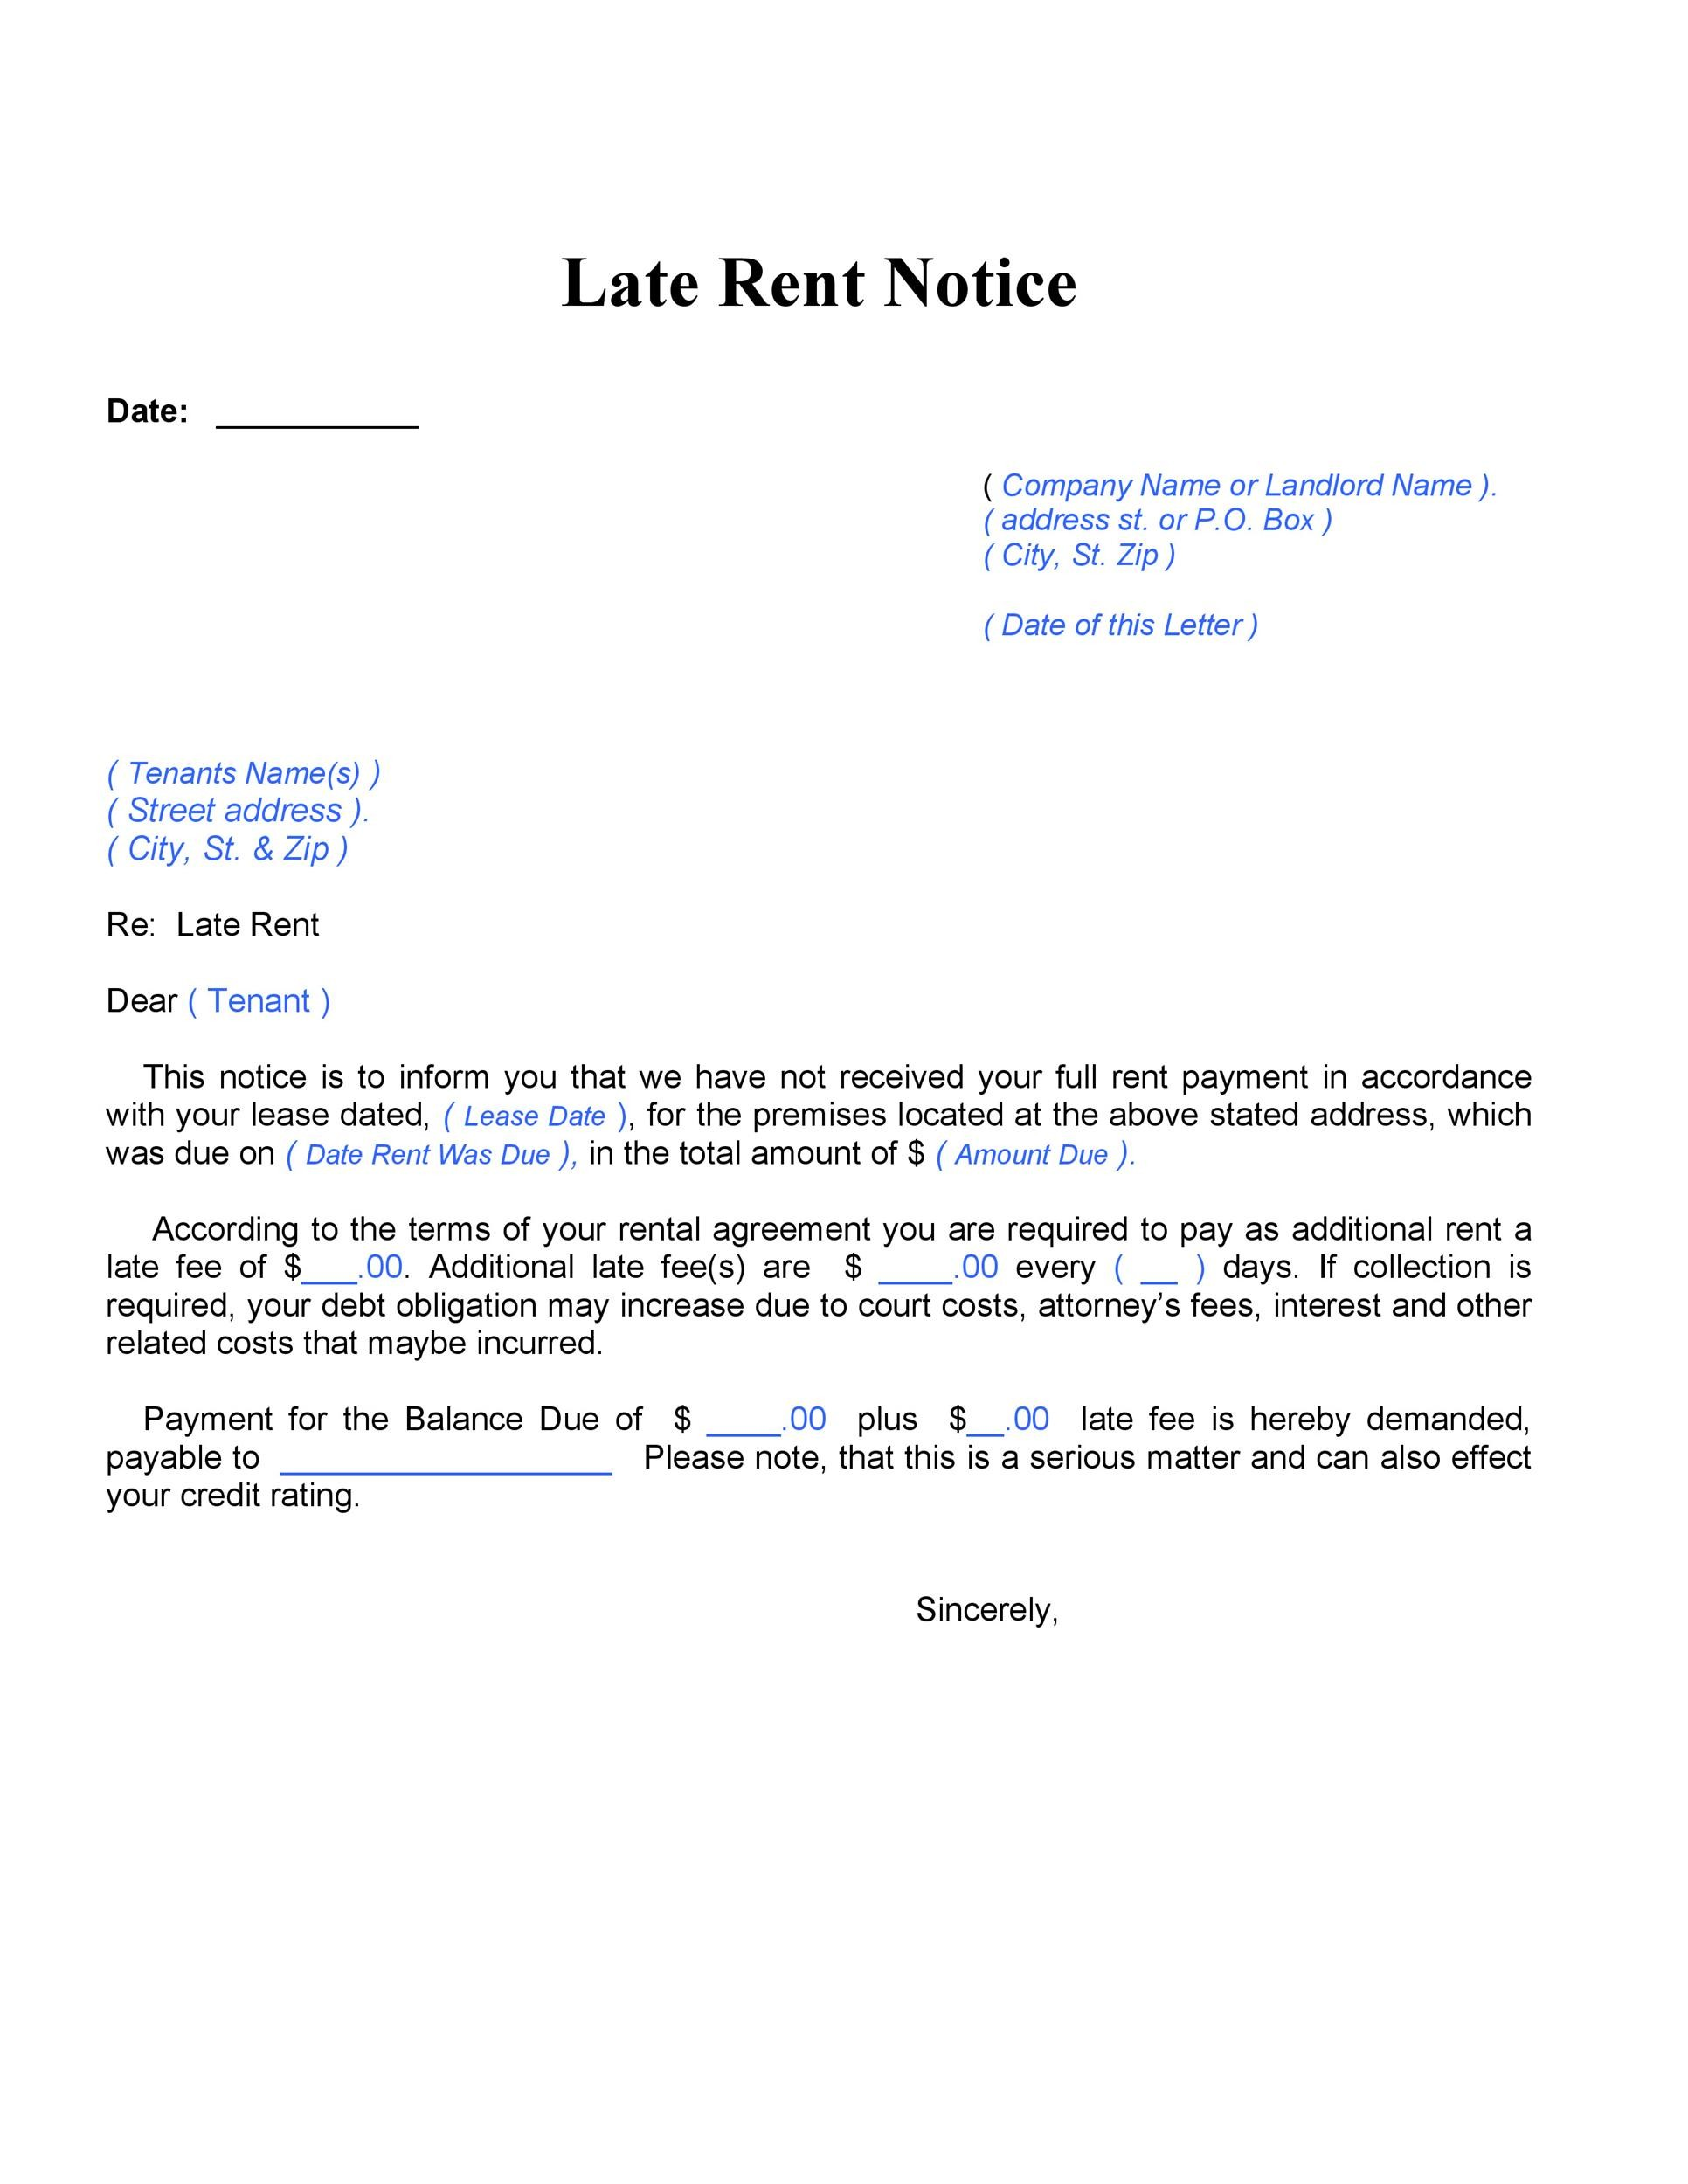 34 Printable Late Rent Notice Templates - Template Lab